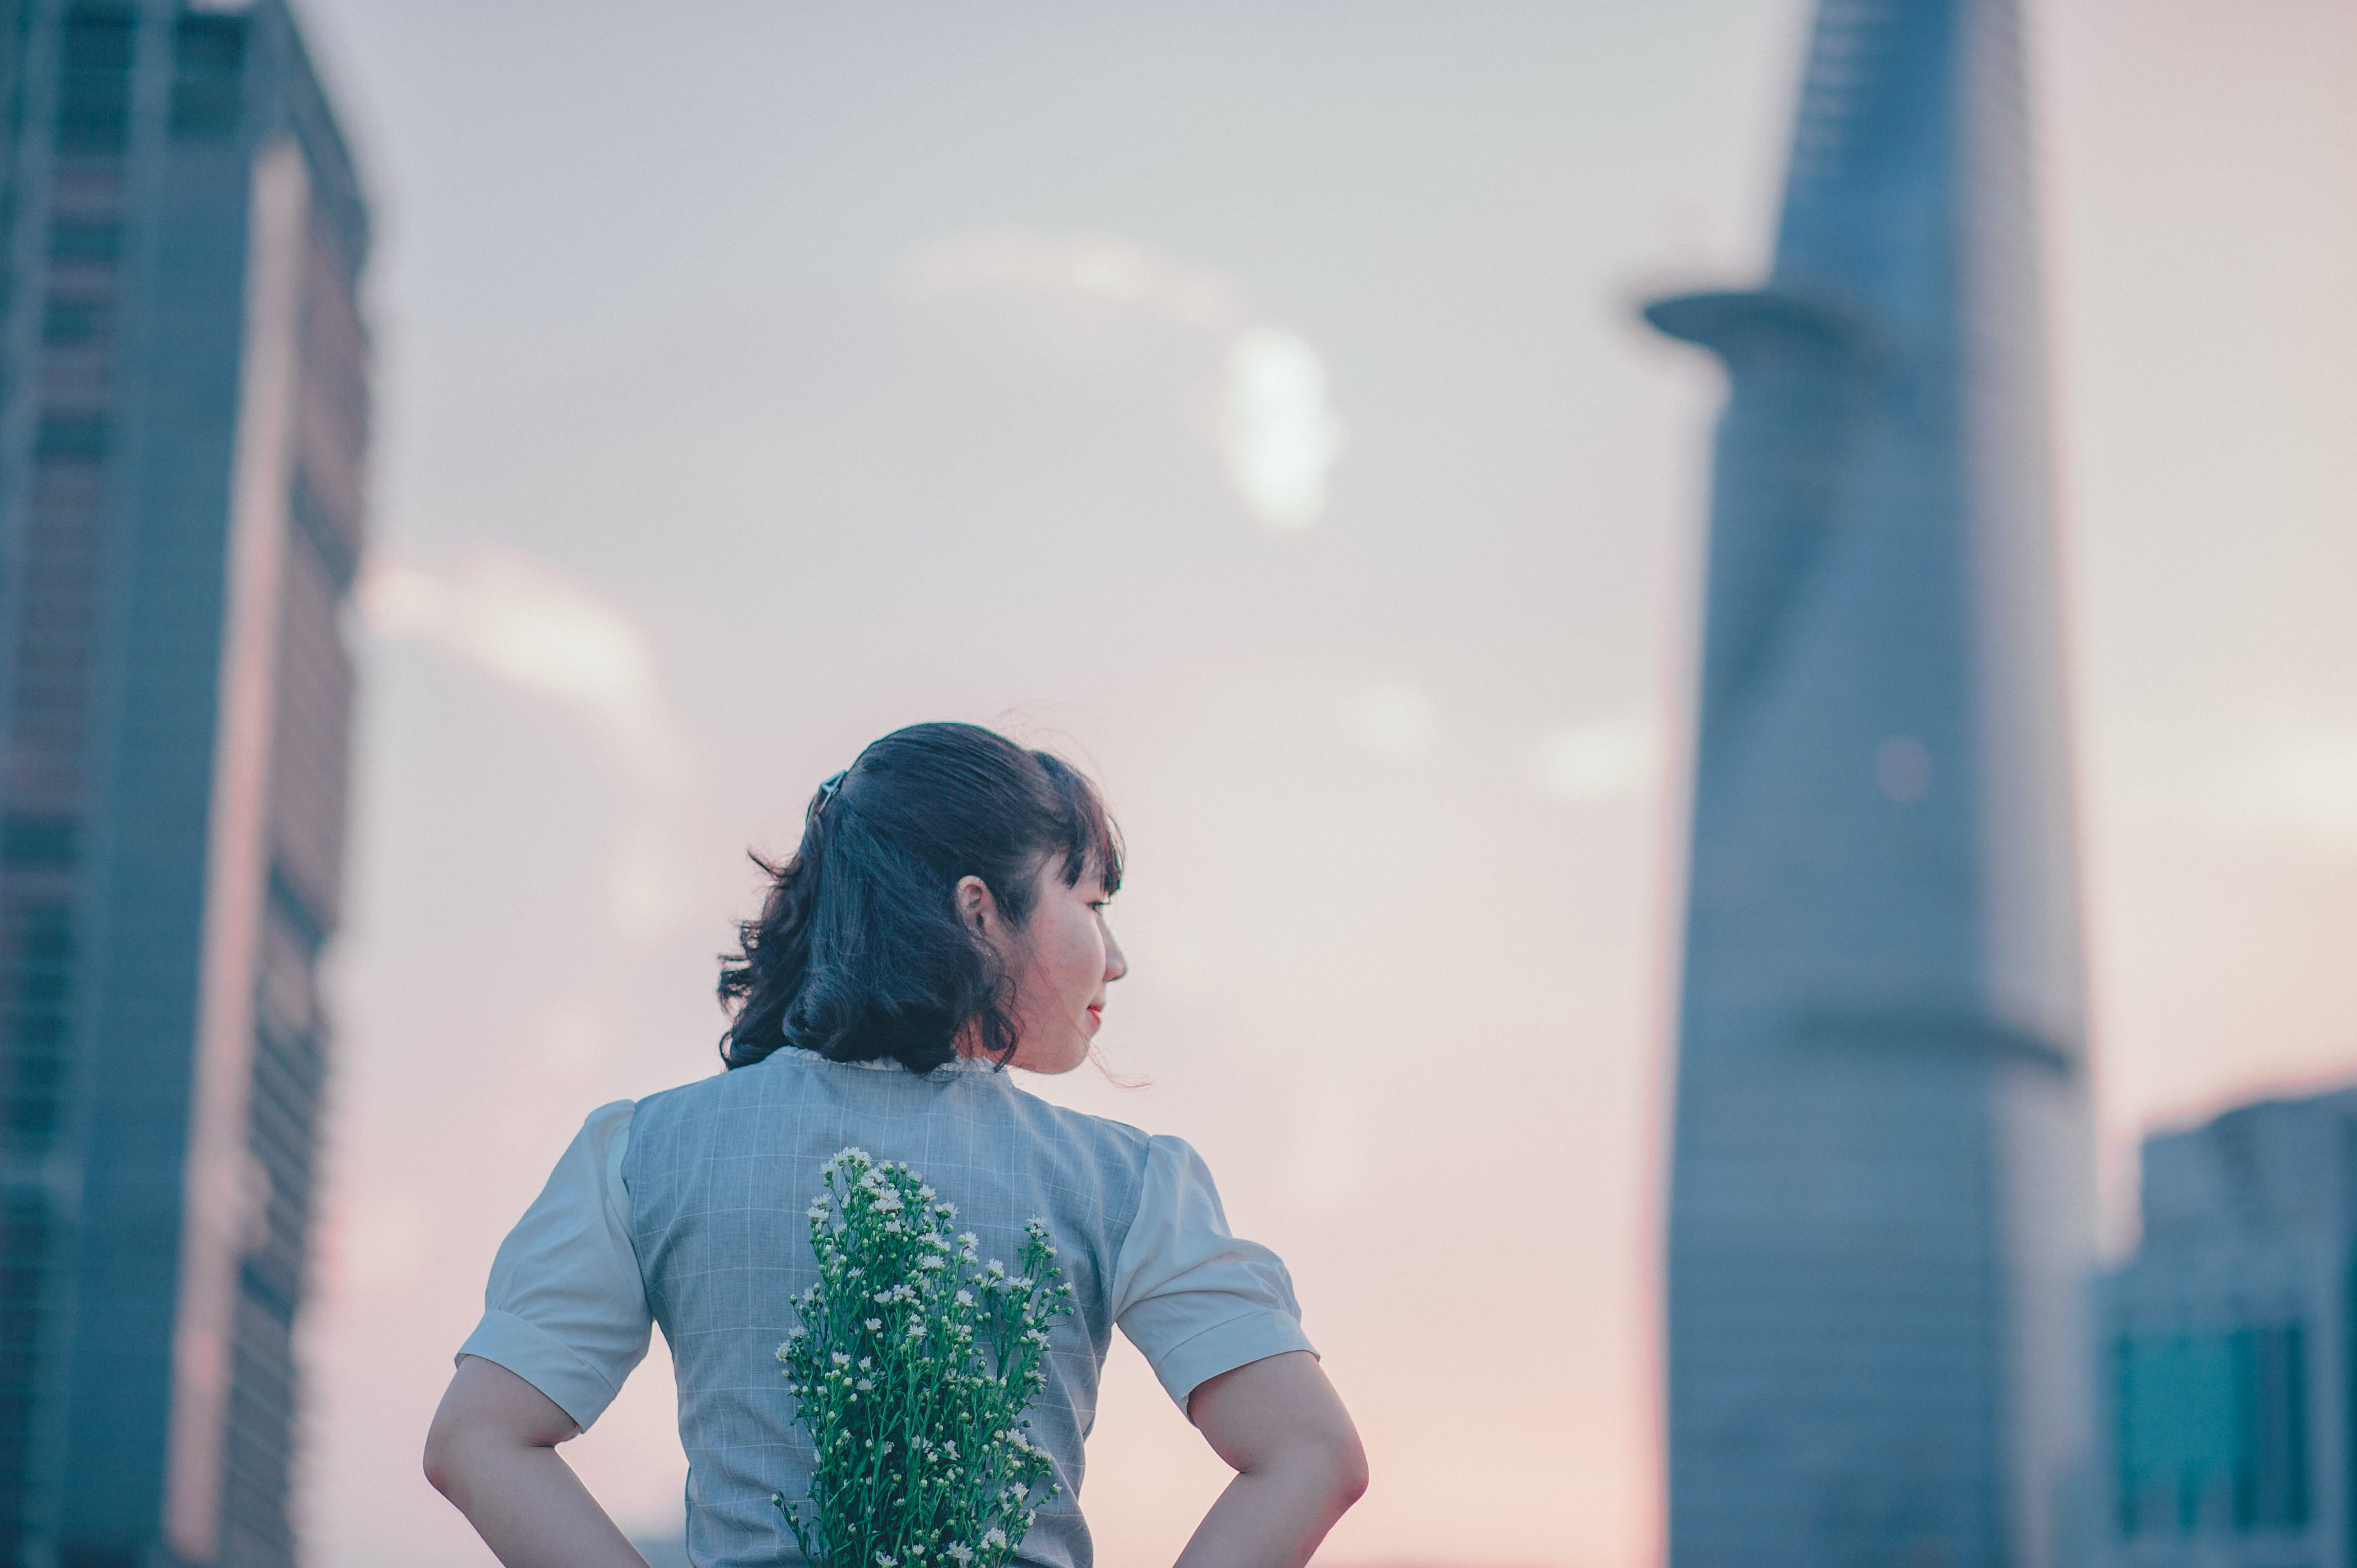 photo of Woman in Gray Top Holding Flowers on Her Back